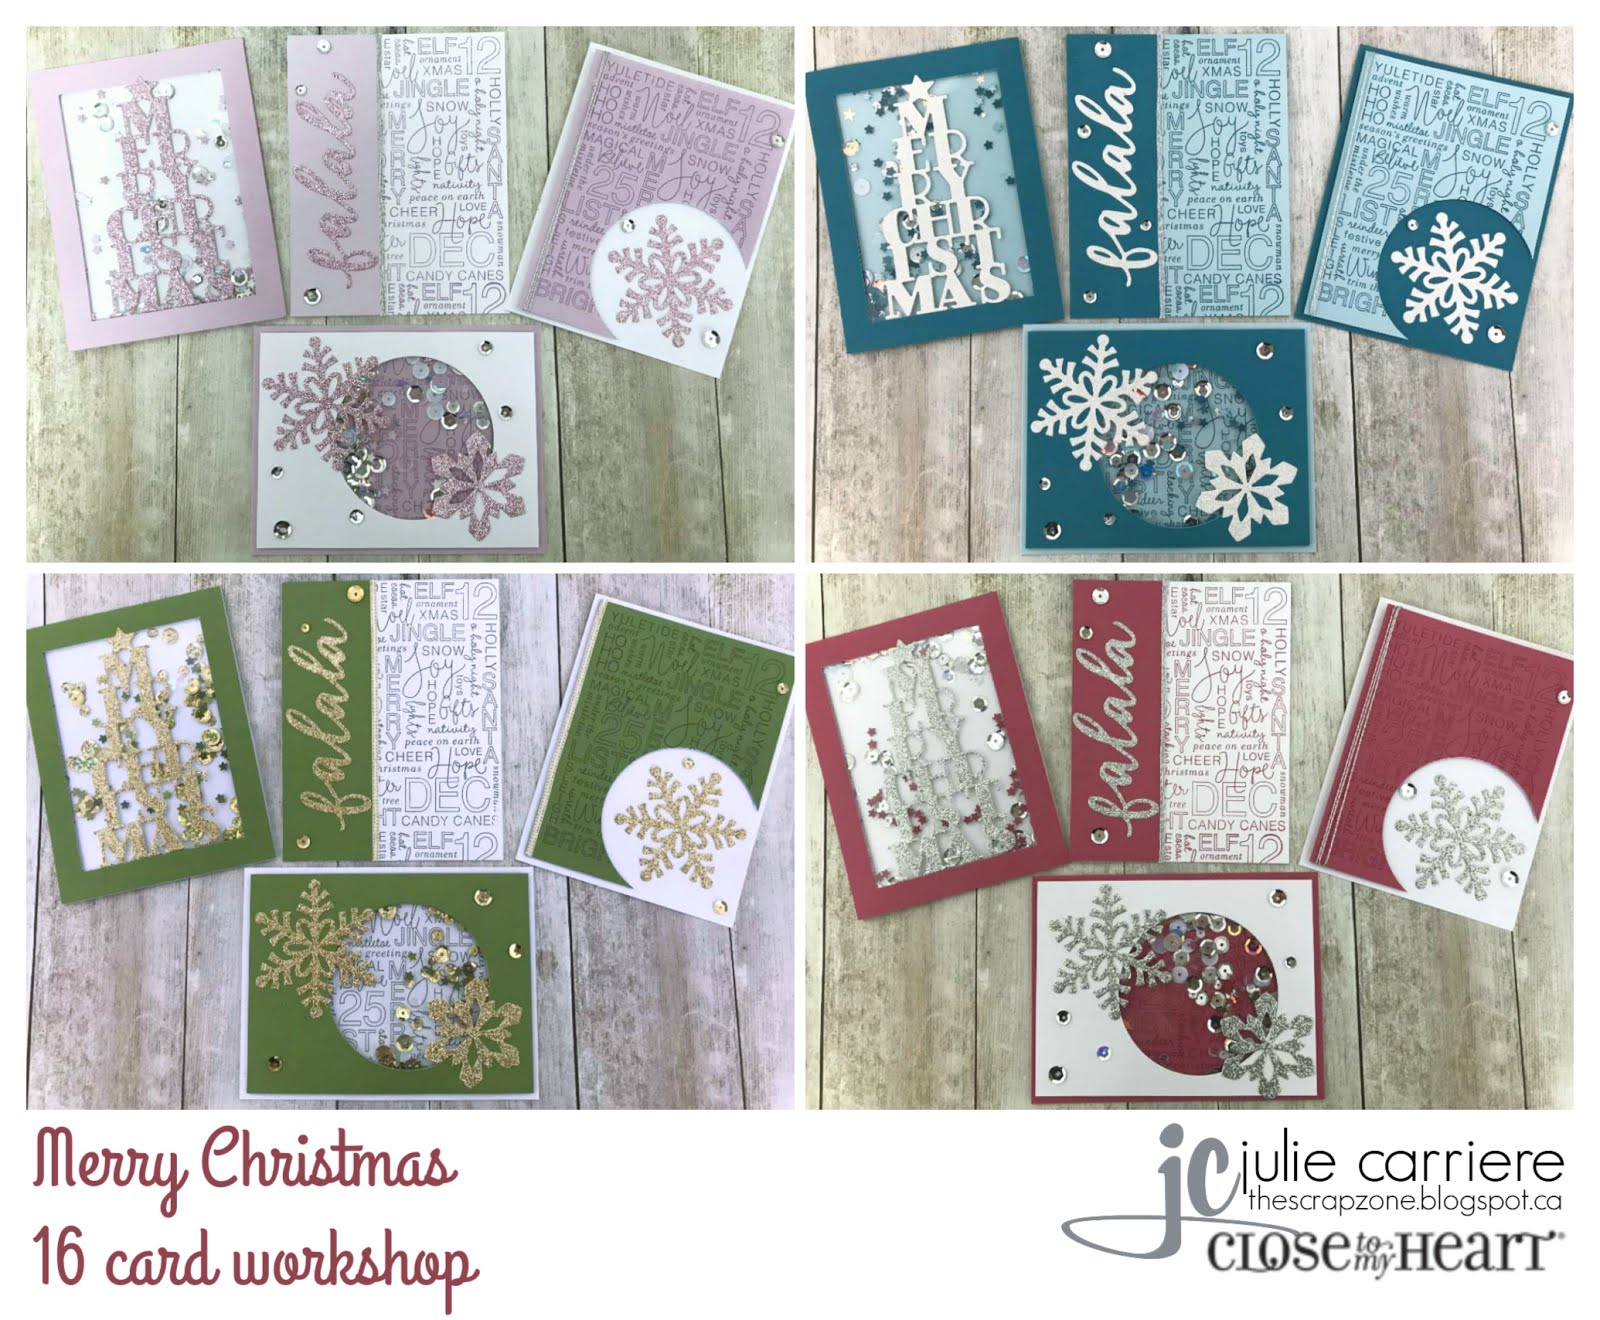 Merry Christmas Cardmaking Assembly Guide